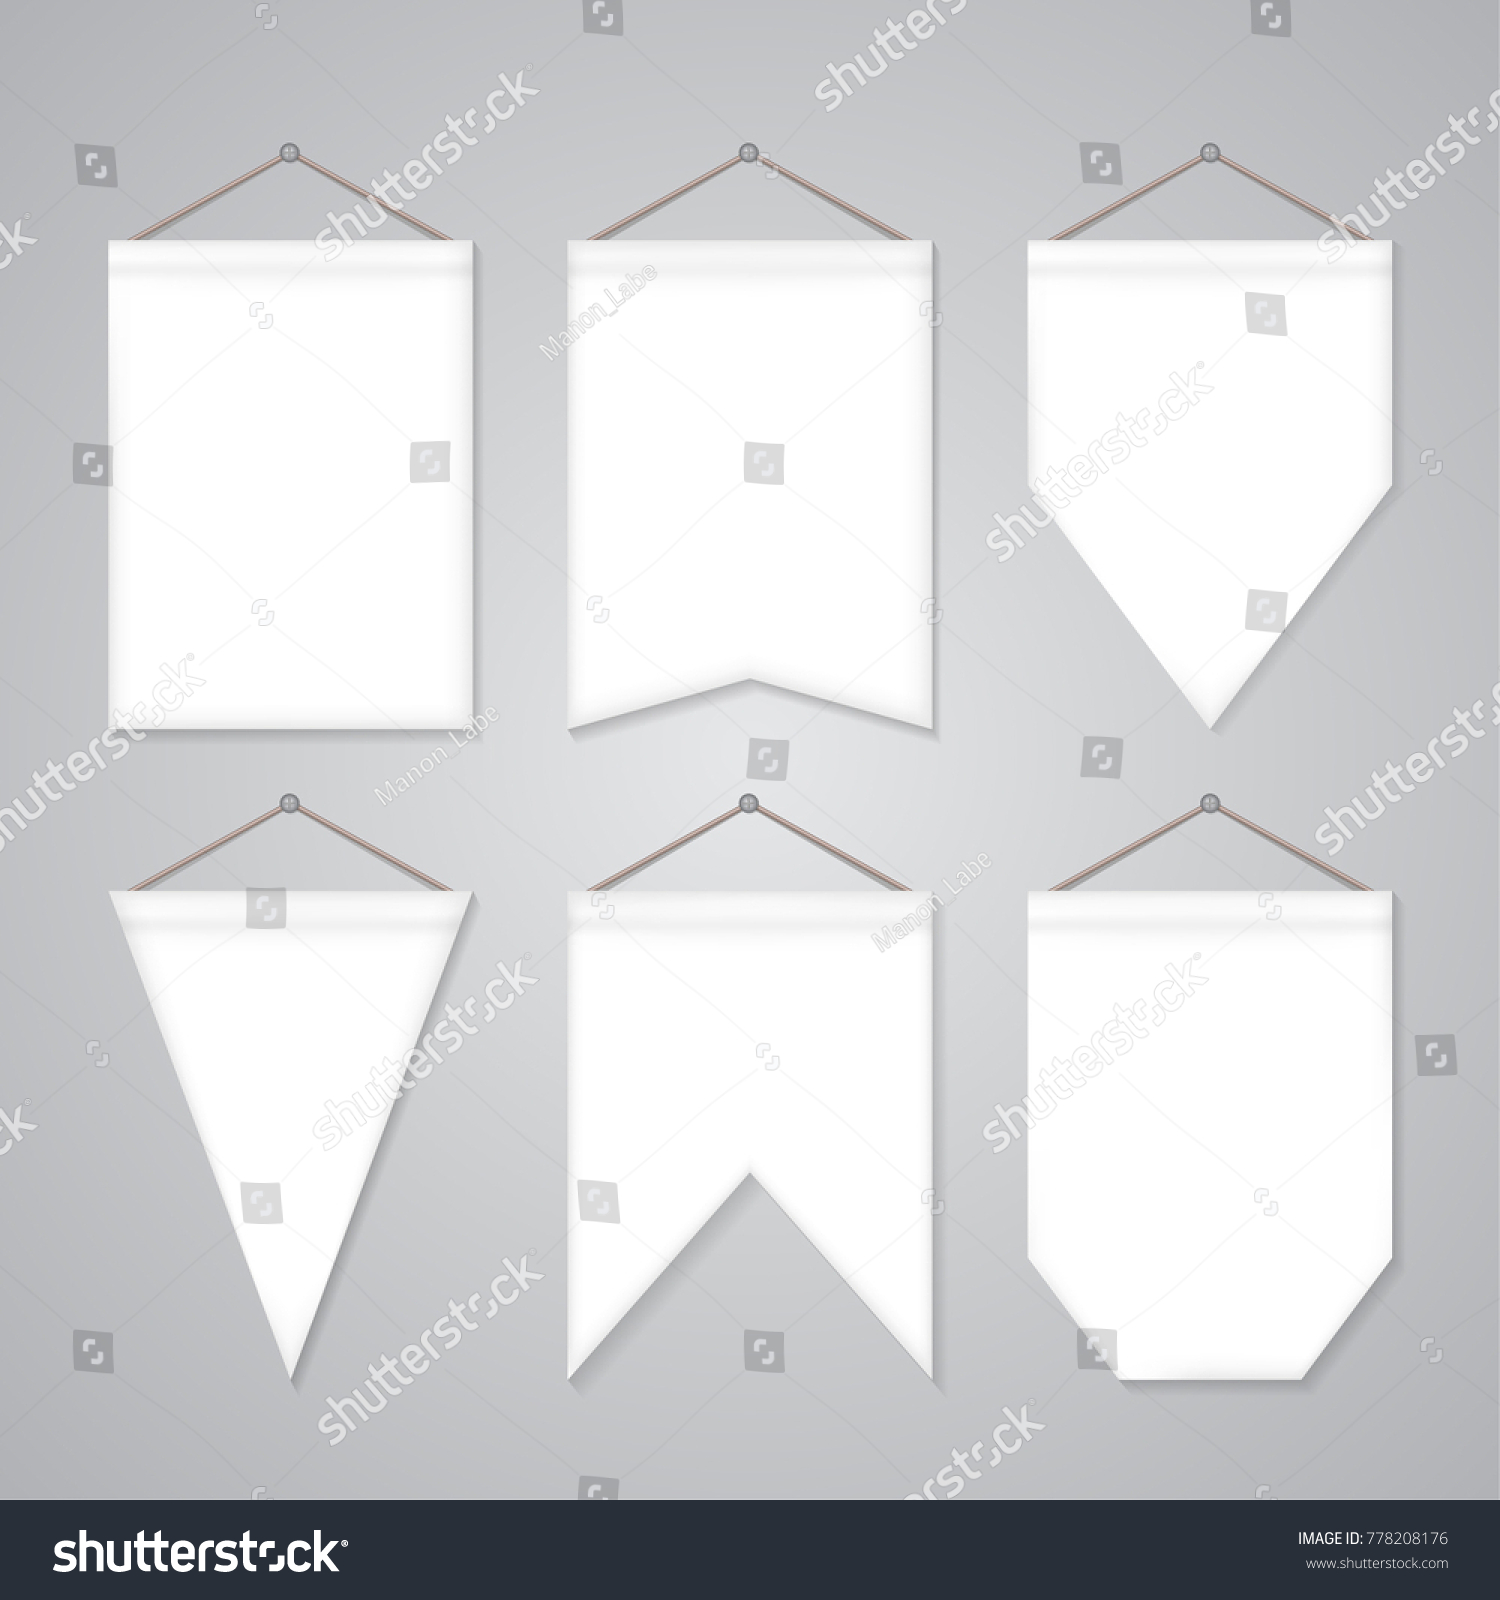 Beautiful pennant templates images resume ideas namanasa white pennant templates vector set empty stock vector 778208176 pronofoot35fo Images